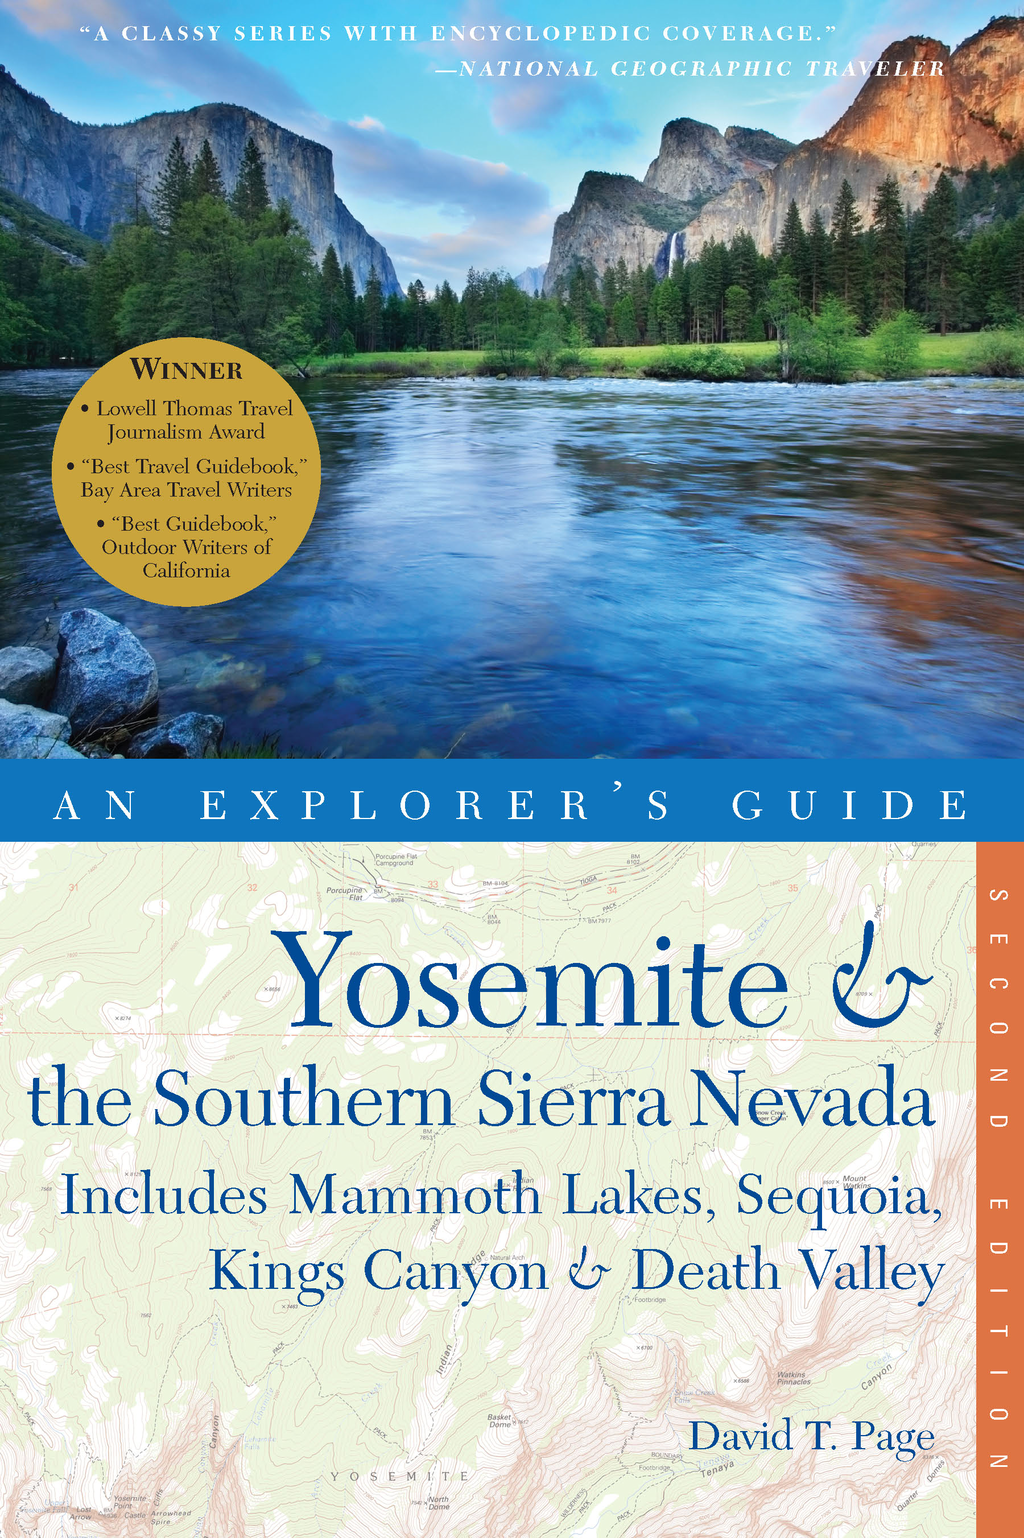 Explorer's Guide Yosemite & the Southern Sierra Nevada: Includes Mammoth Lakes, Sequoia, Kings Canyon & Death Valley: A Great Destination (Second Edition)  (Explorer's Great Destinations)